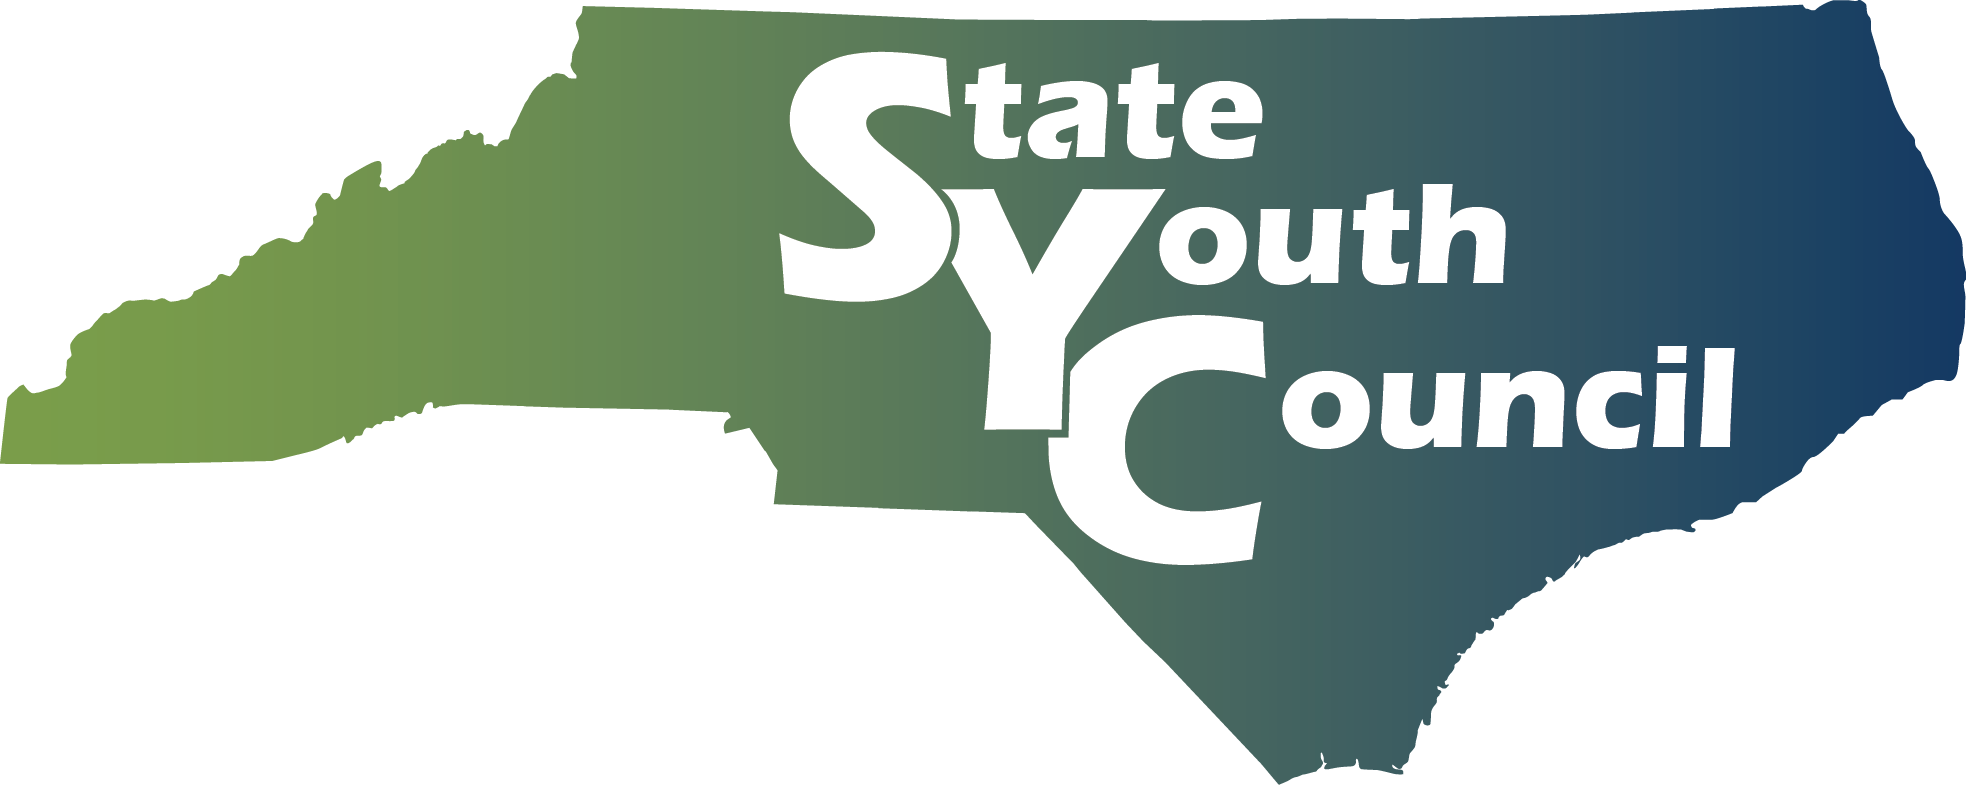 >State Youth Councils Logo